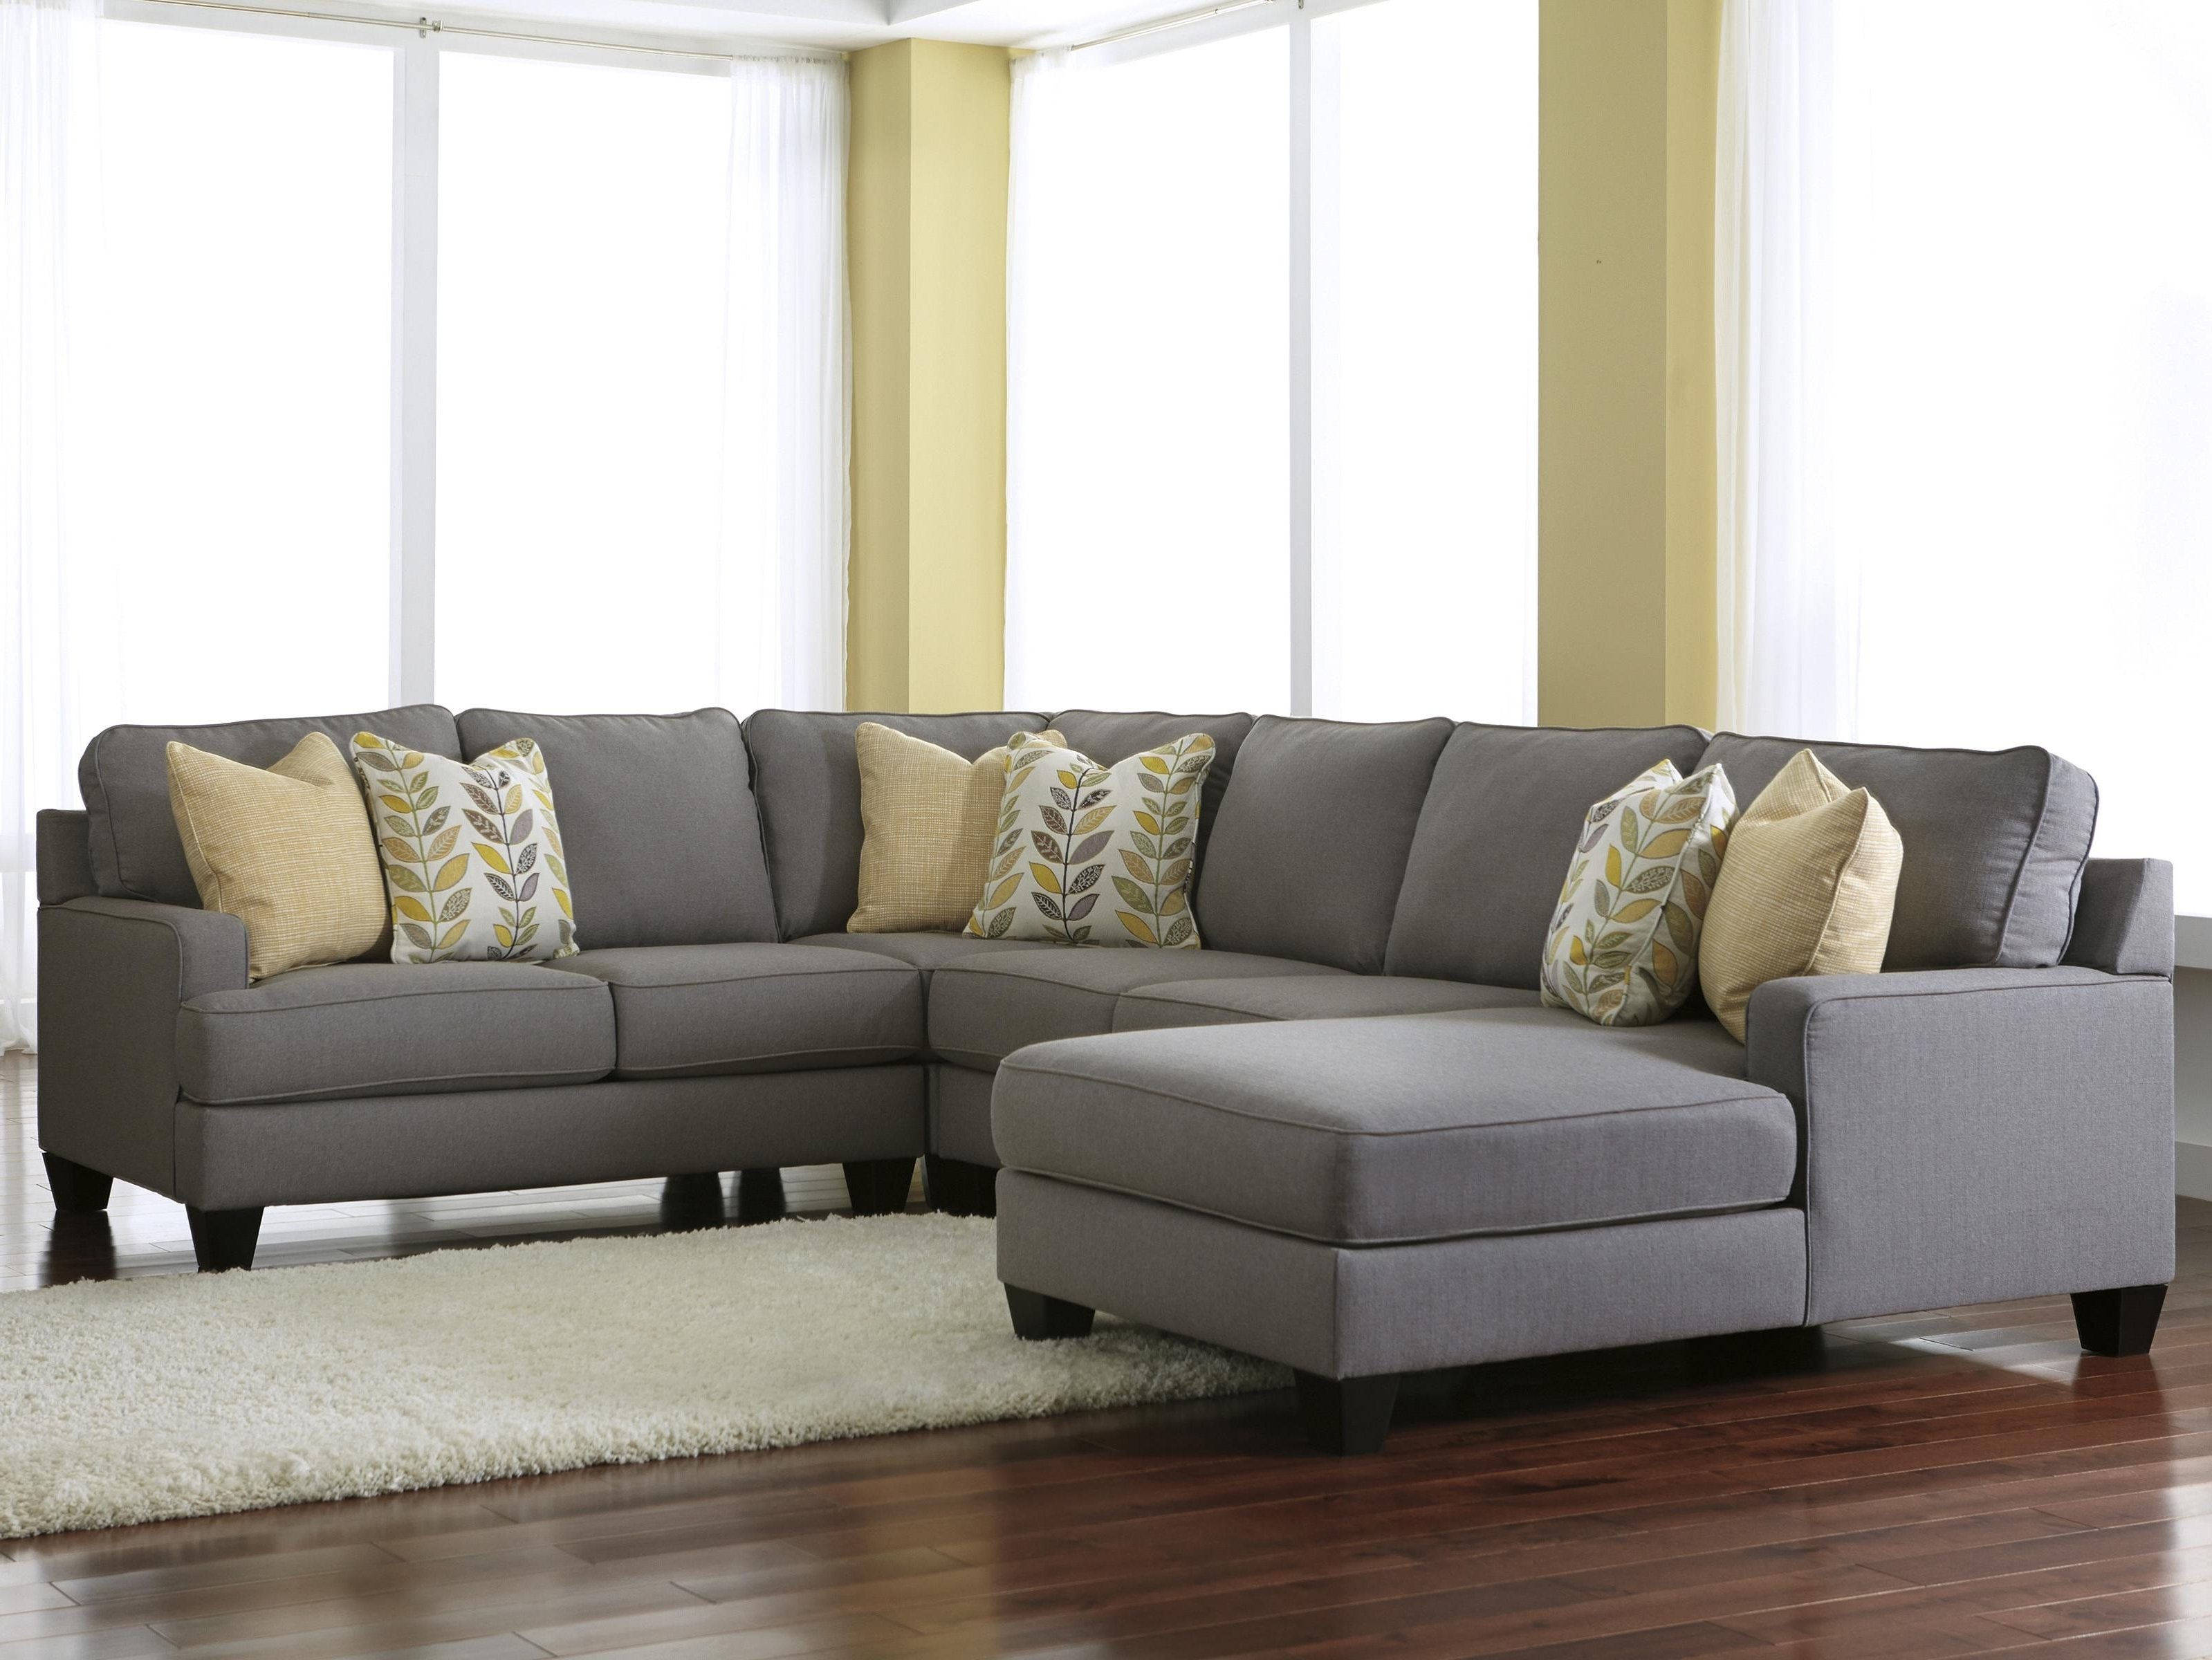 Modern 4 Piece Sectional Sofa With Left Chaise & Reversible Seat Within Trendy Gallery Furniture Sectional Sofas (View 8 of 15)